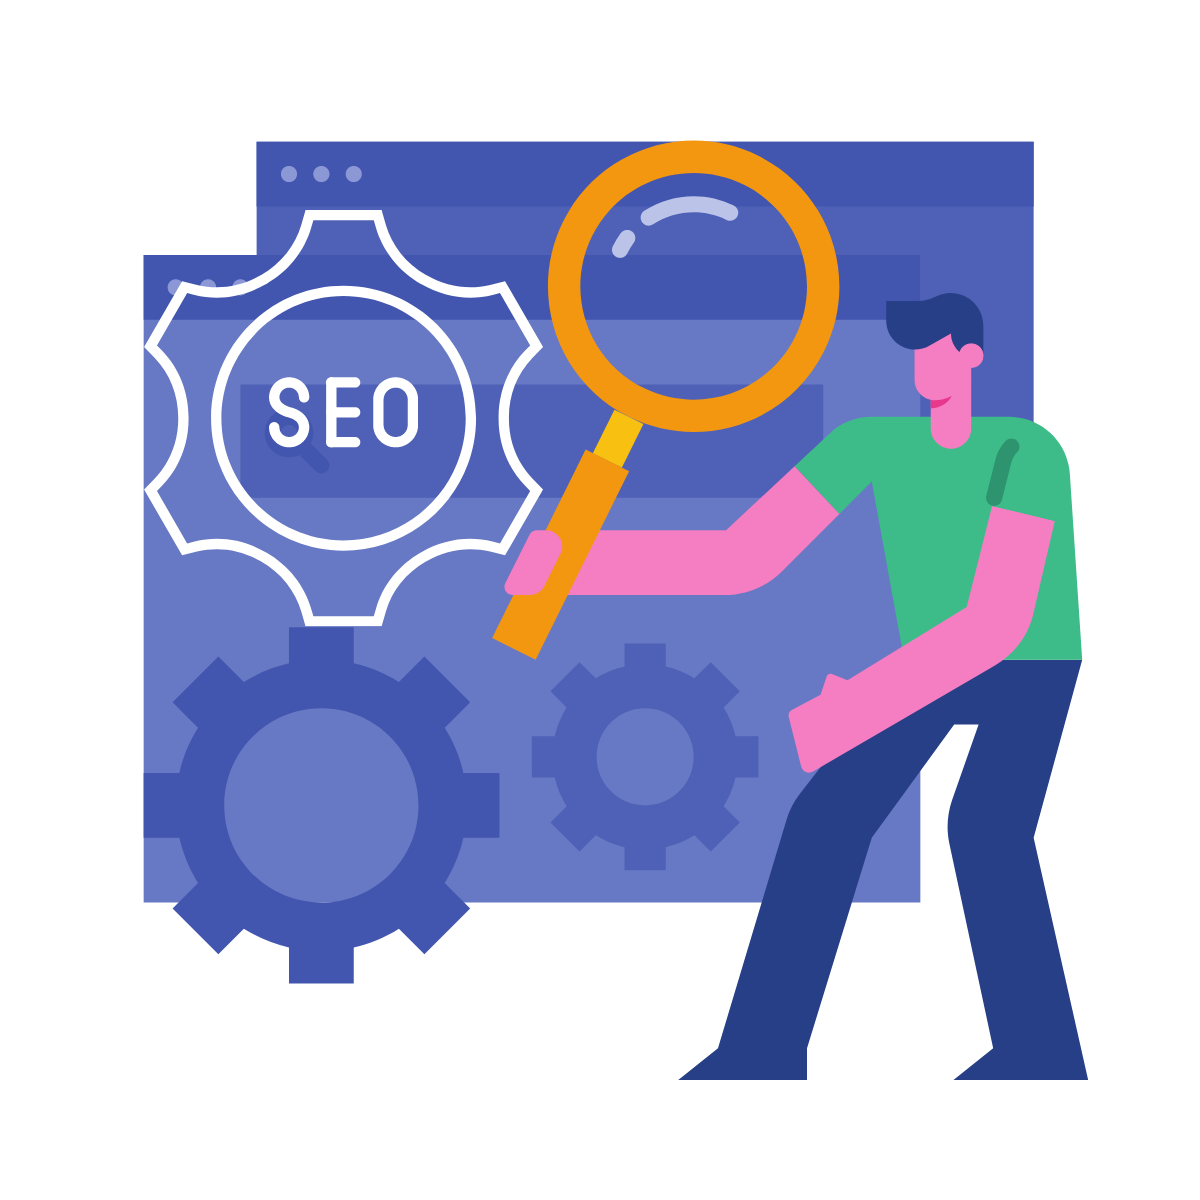 seo executive job icon